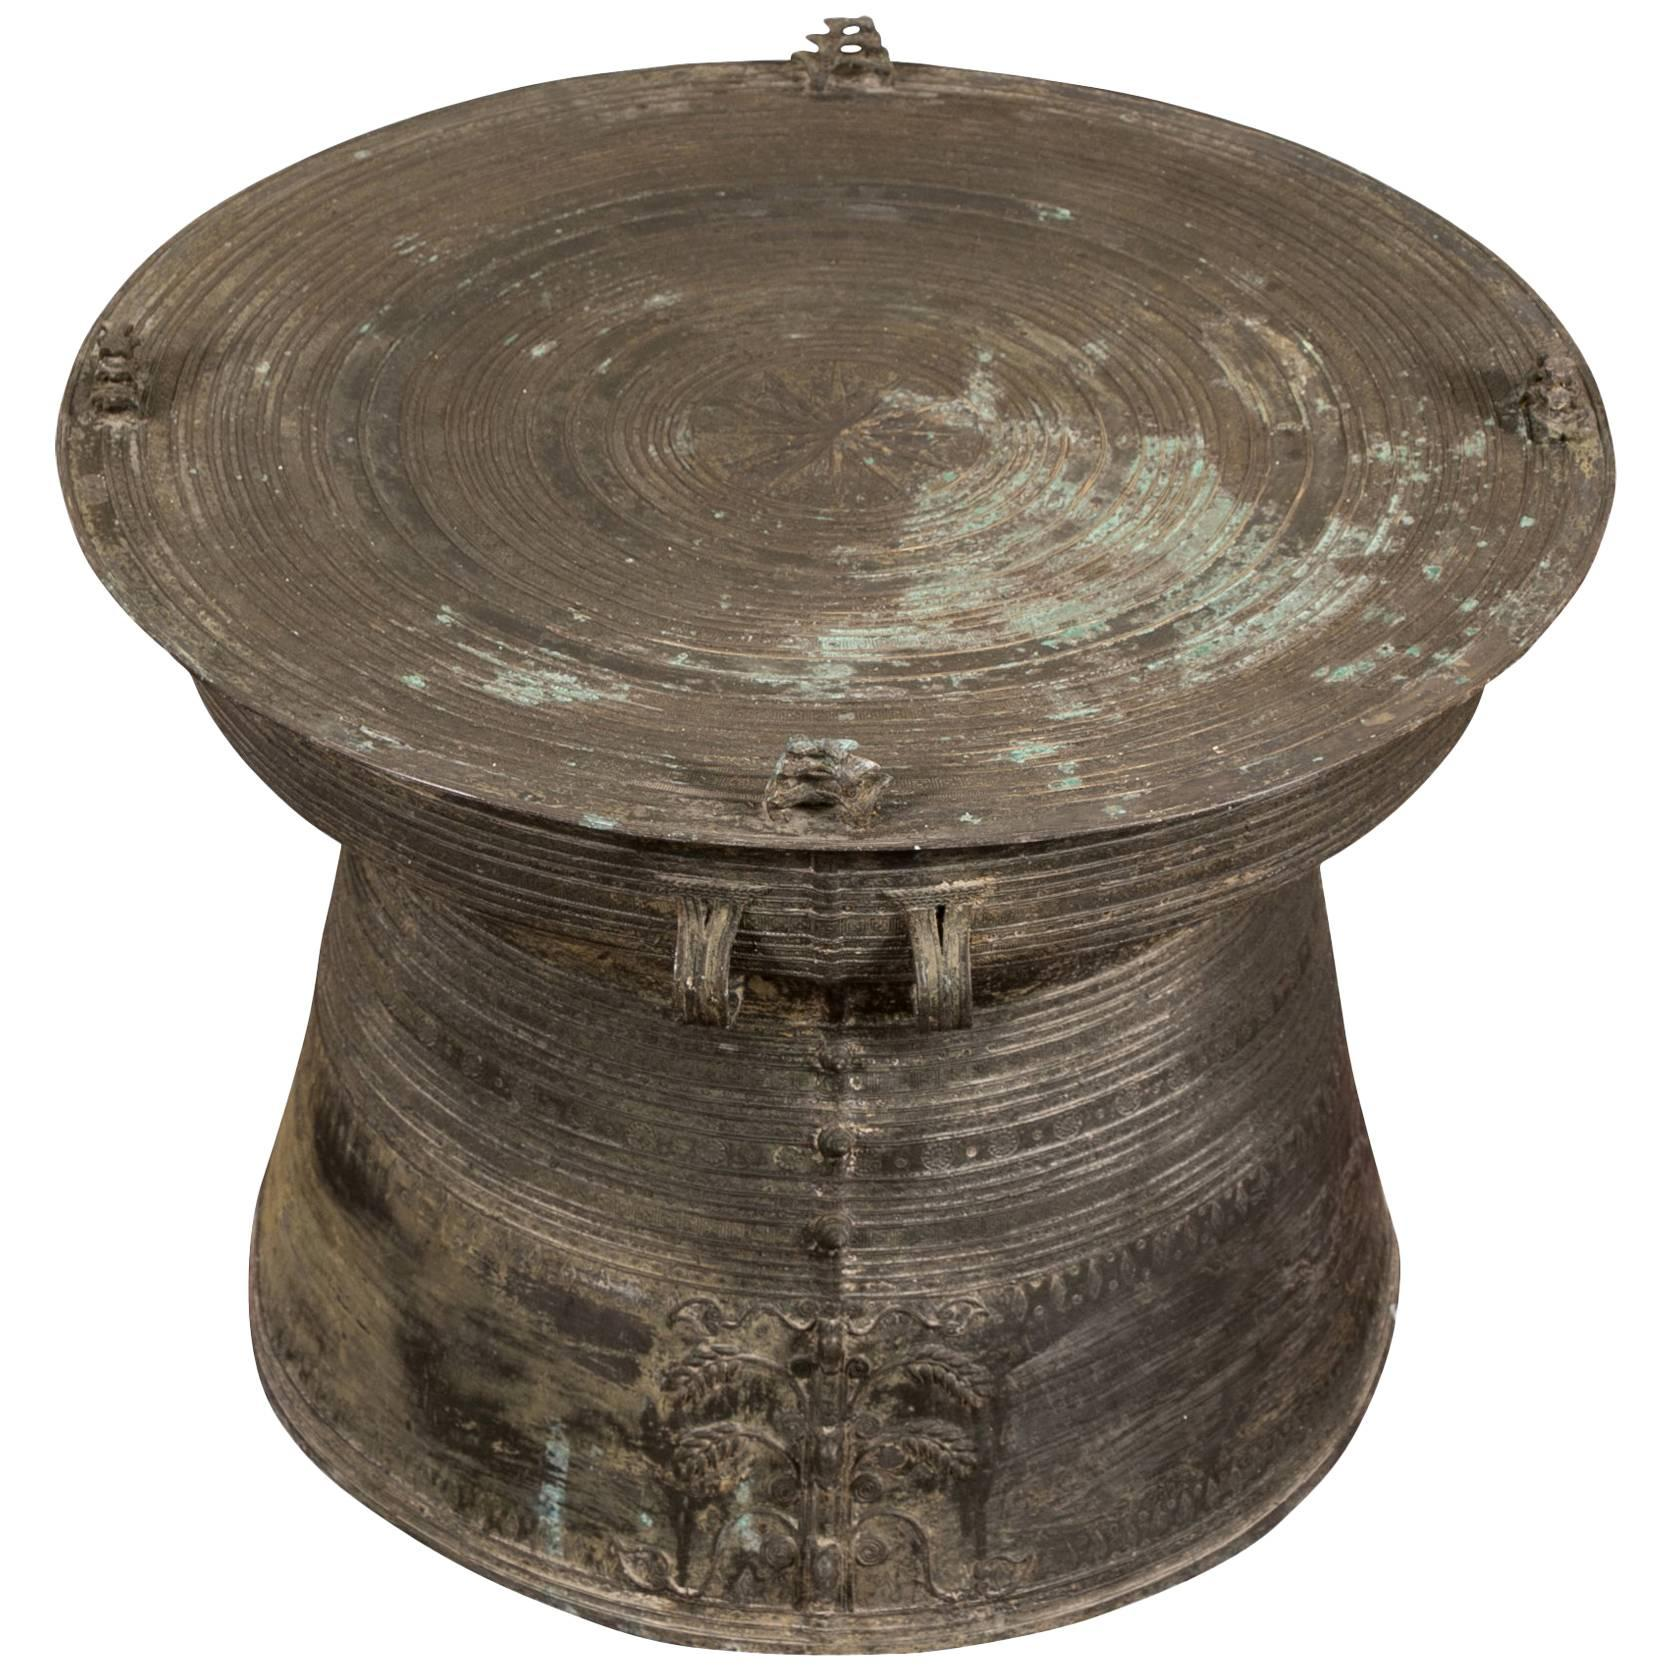 pair large heavy bronze south asian rain drum tables master tibetan accent table standard height sofa end barn wood furniture small dining metal reducer strip granite drop leaf